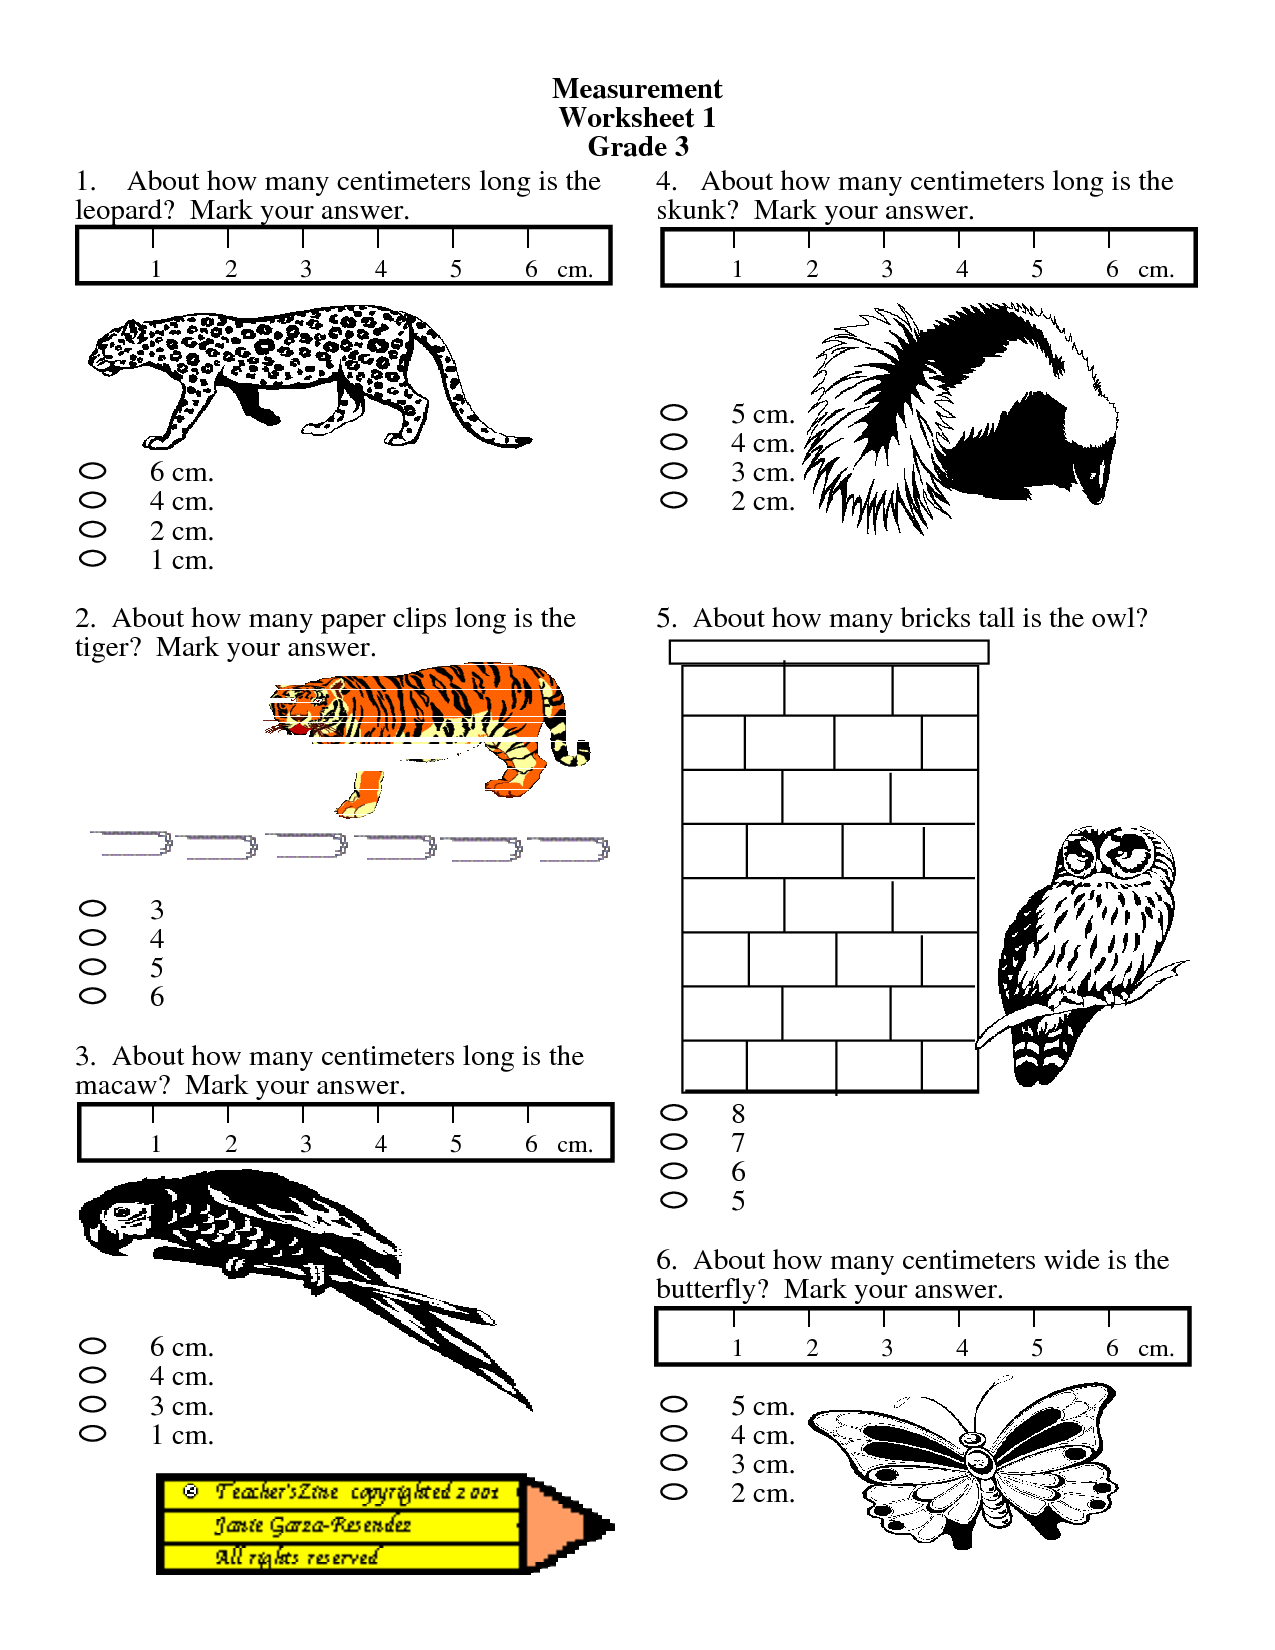 Measurement Worksheets Grade 4 - Hypeelite